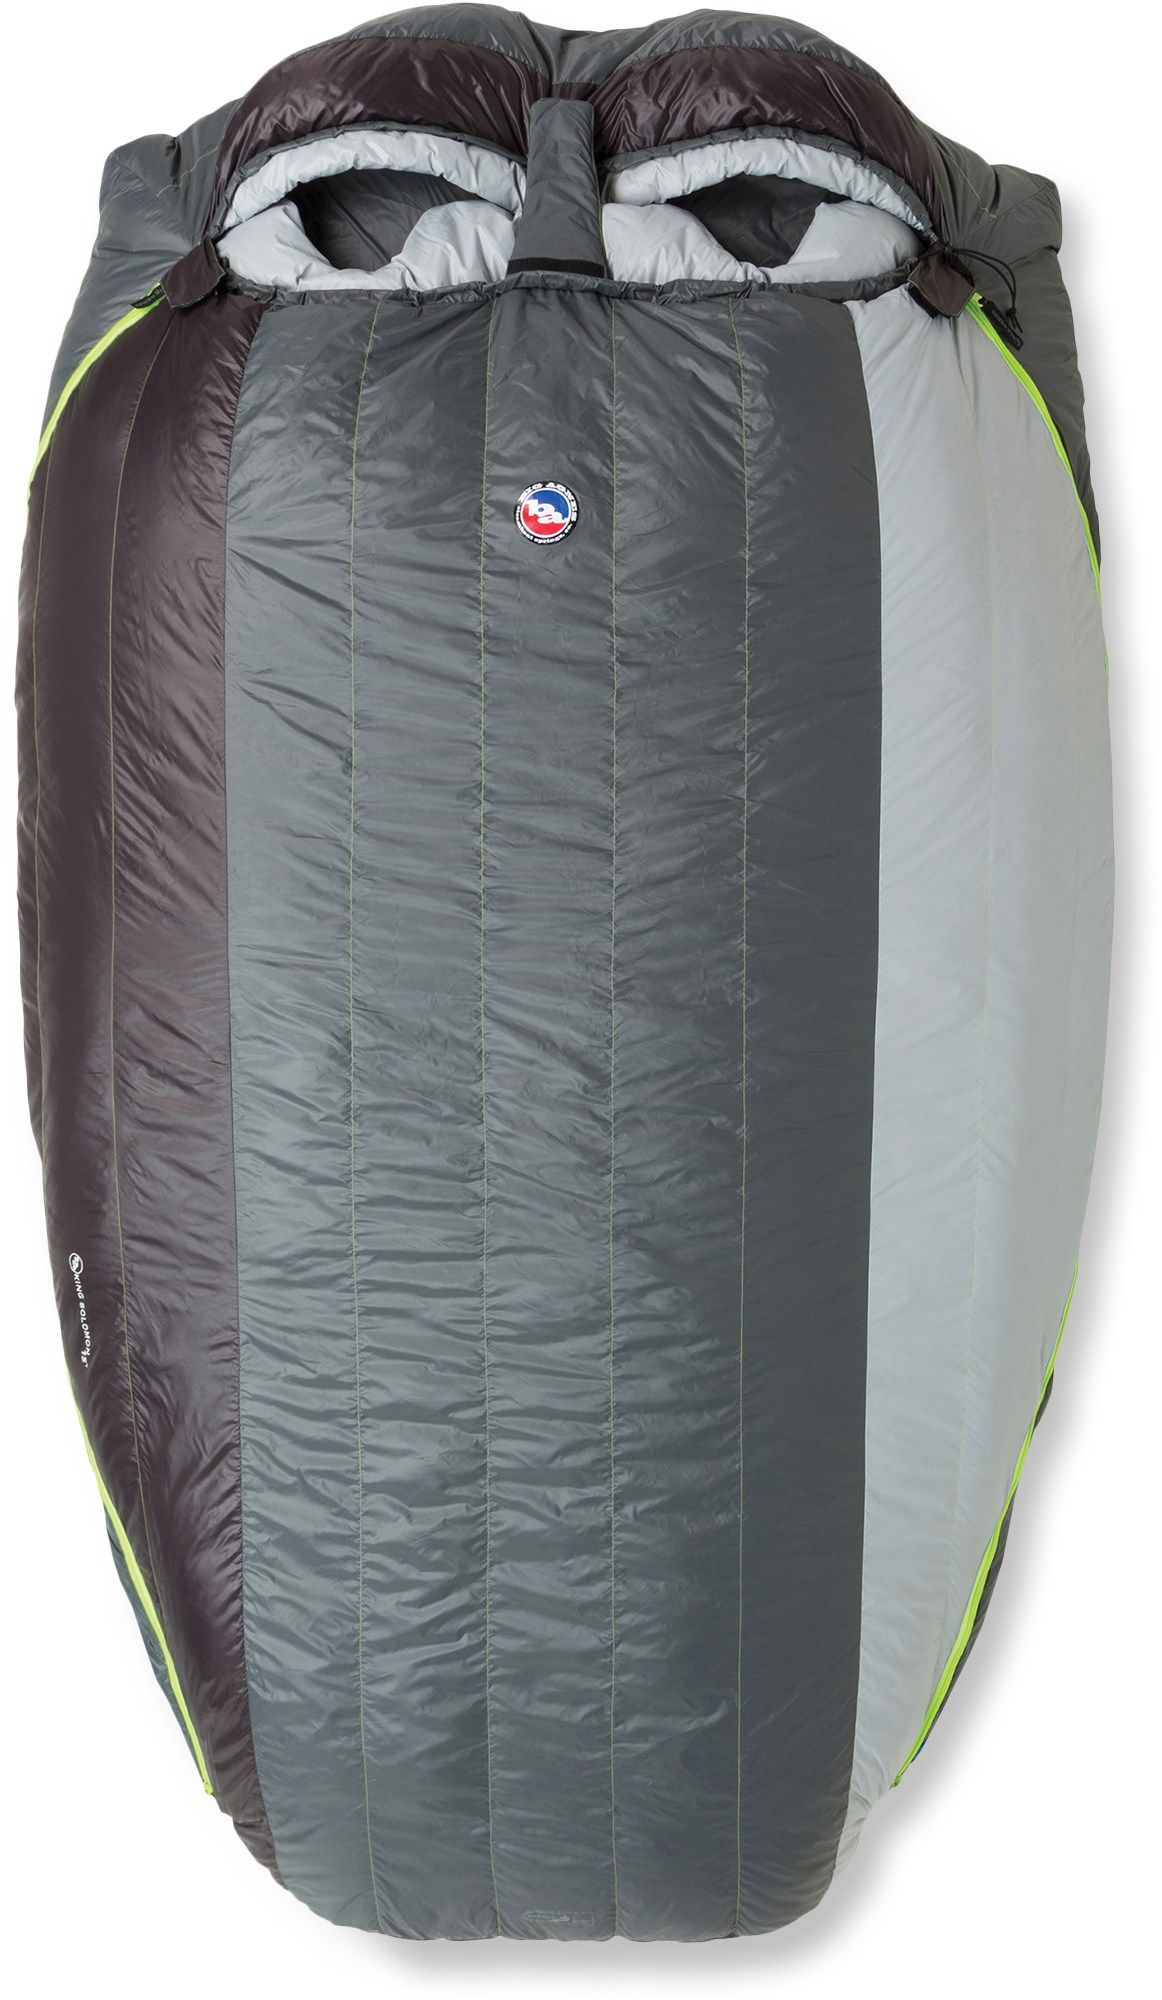 Agnes Uni King Solomon Sleeping Bag Double